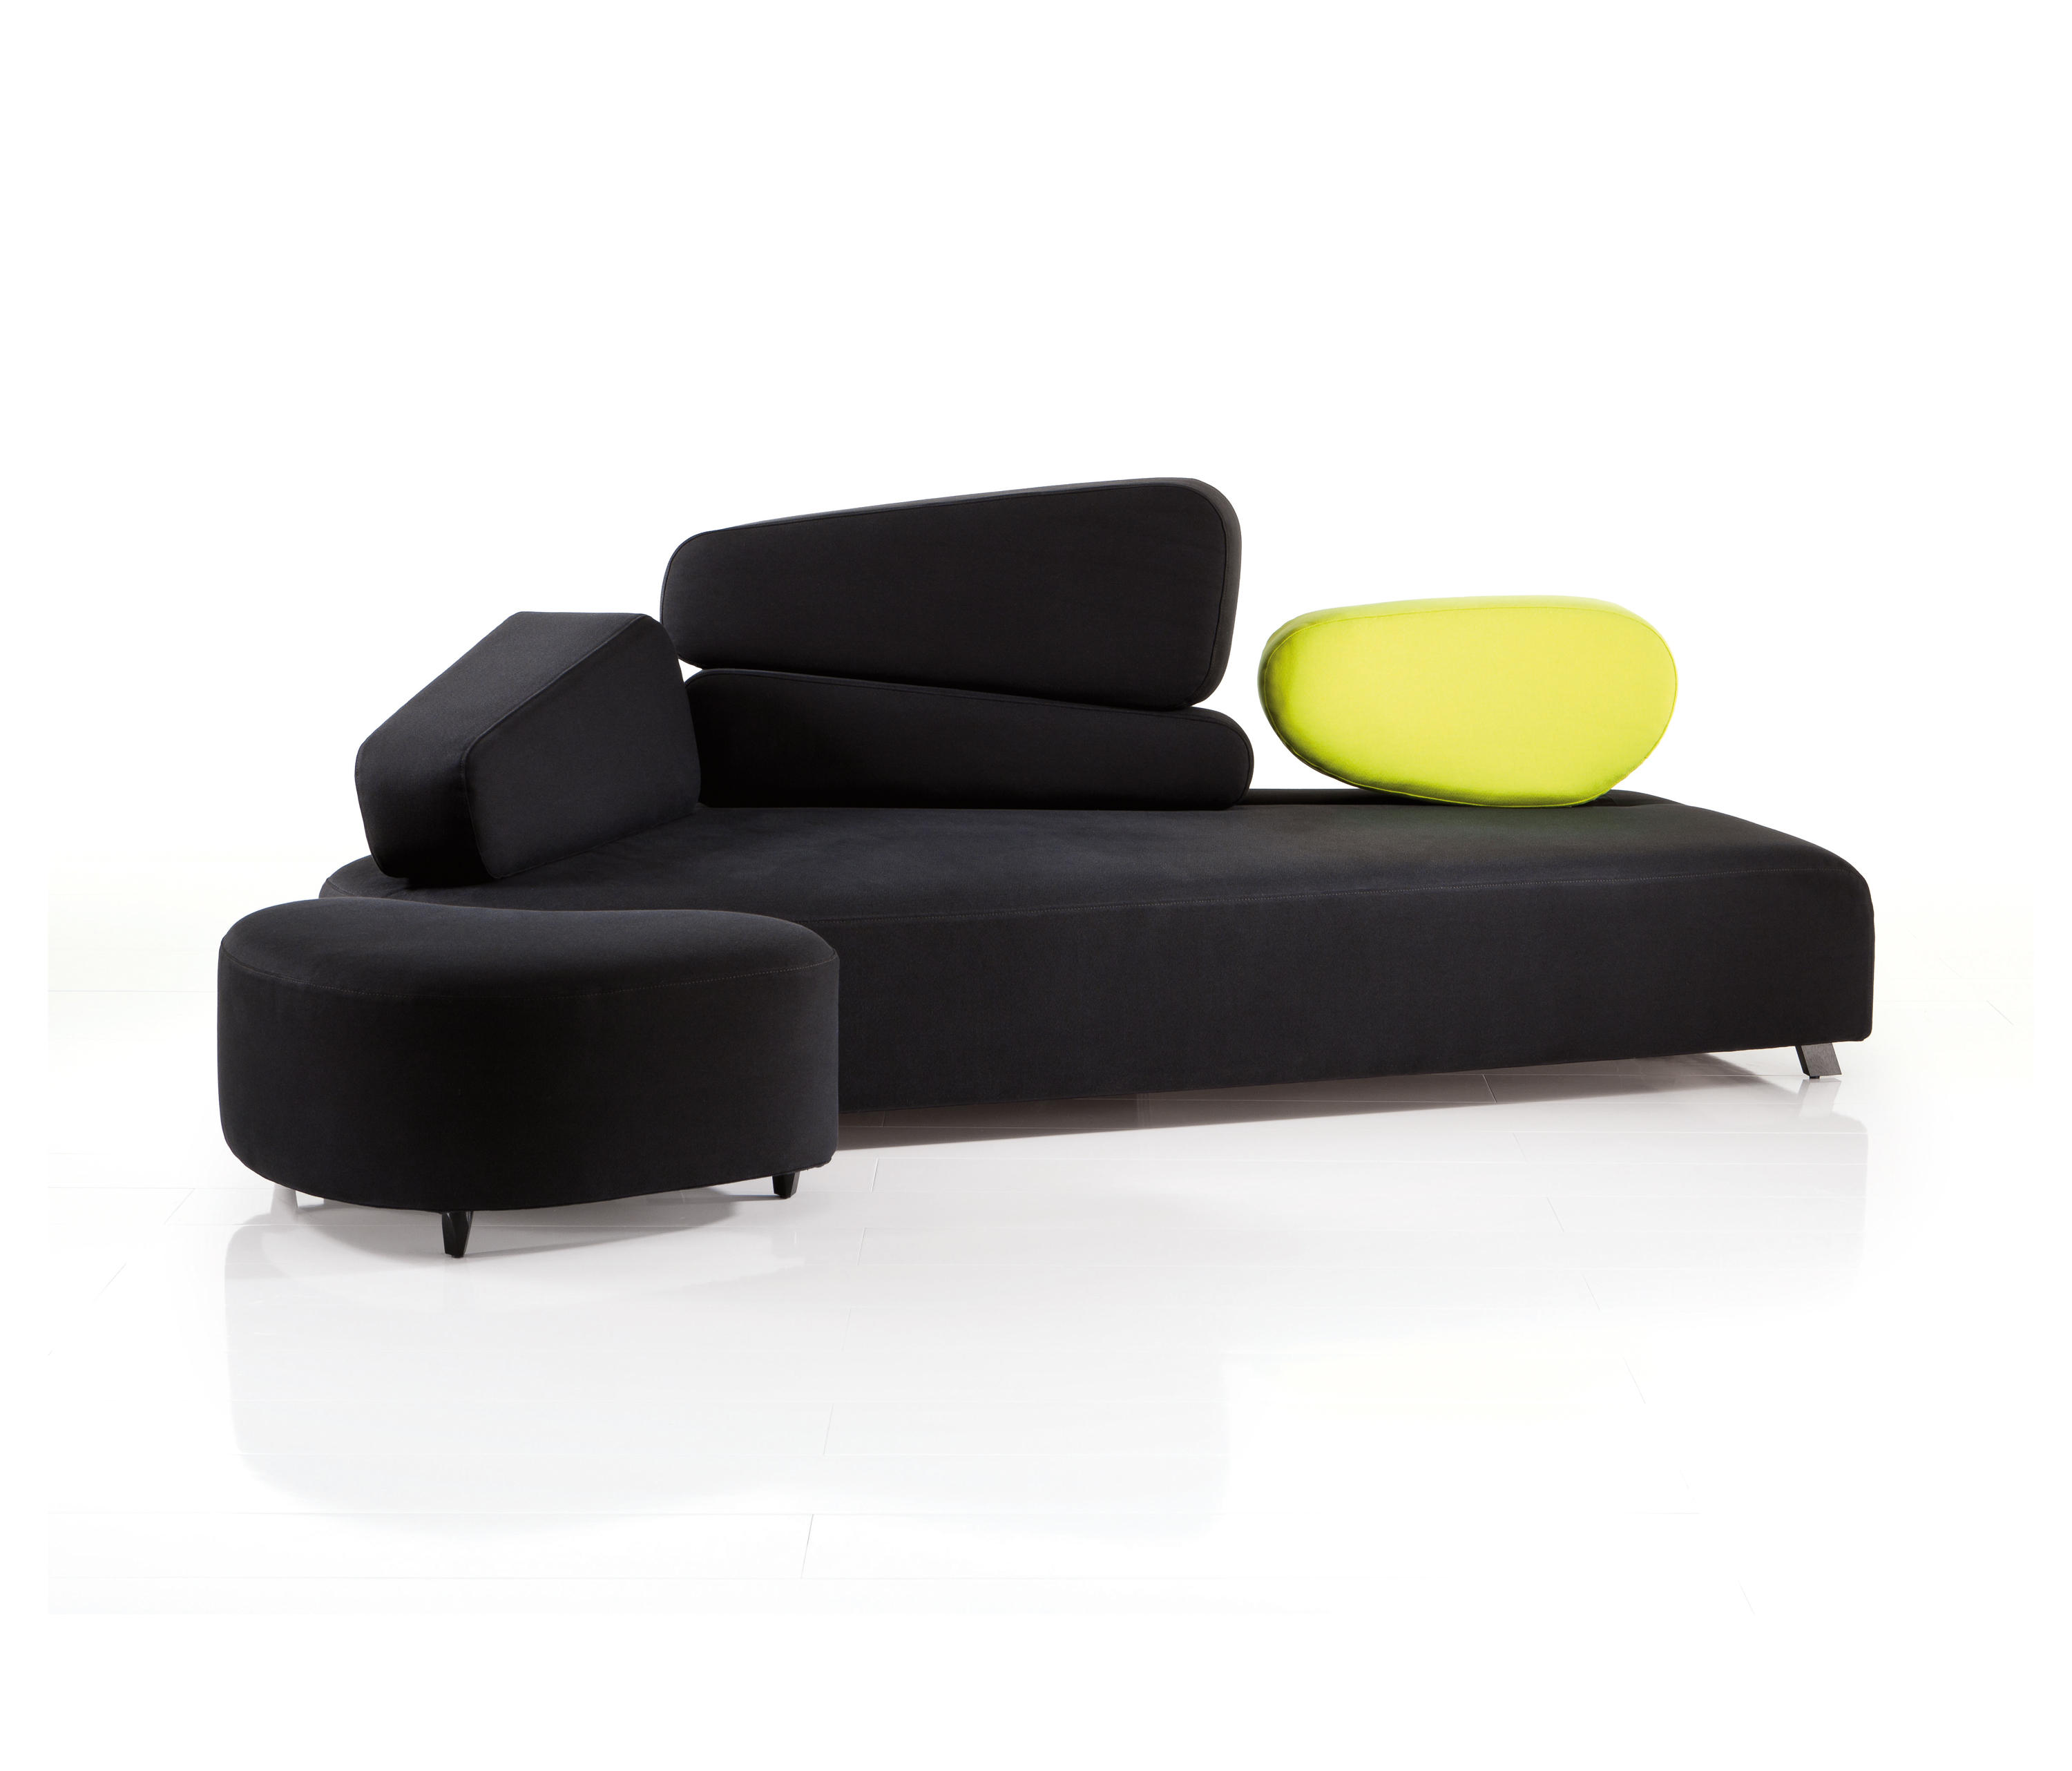 mosspink seatingscape with stool lounge sofas from br hl architonic. Black Bedroom Furniture Sets. Home Design Ideas